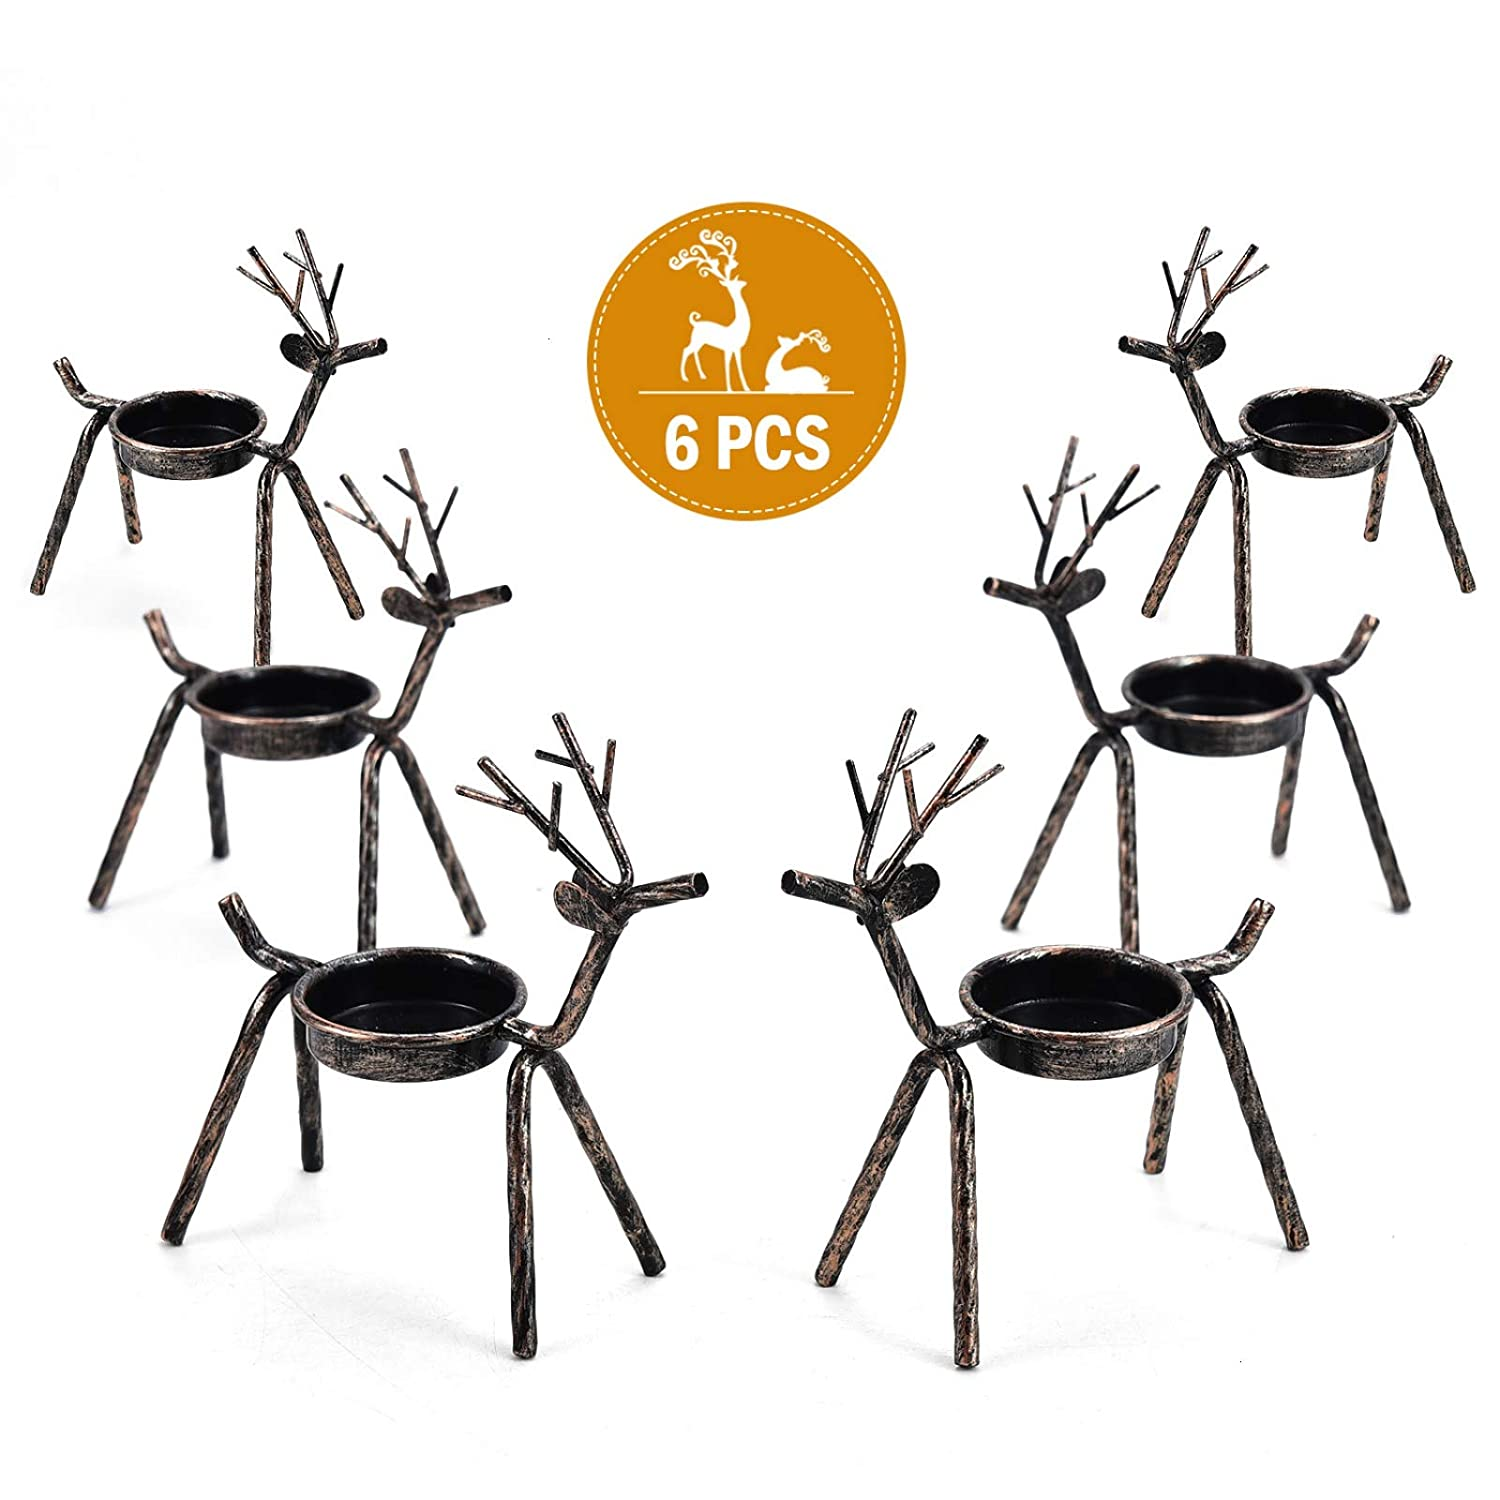 Rocinha Reindeer Candle Holder, Set of 6 Tea Candles Holders Holiday Candlestick Christmas Decoration for Home, Table, Fireplace, Window